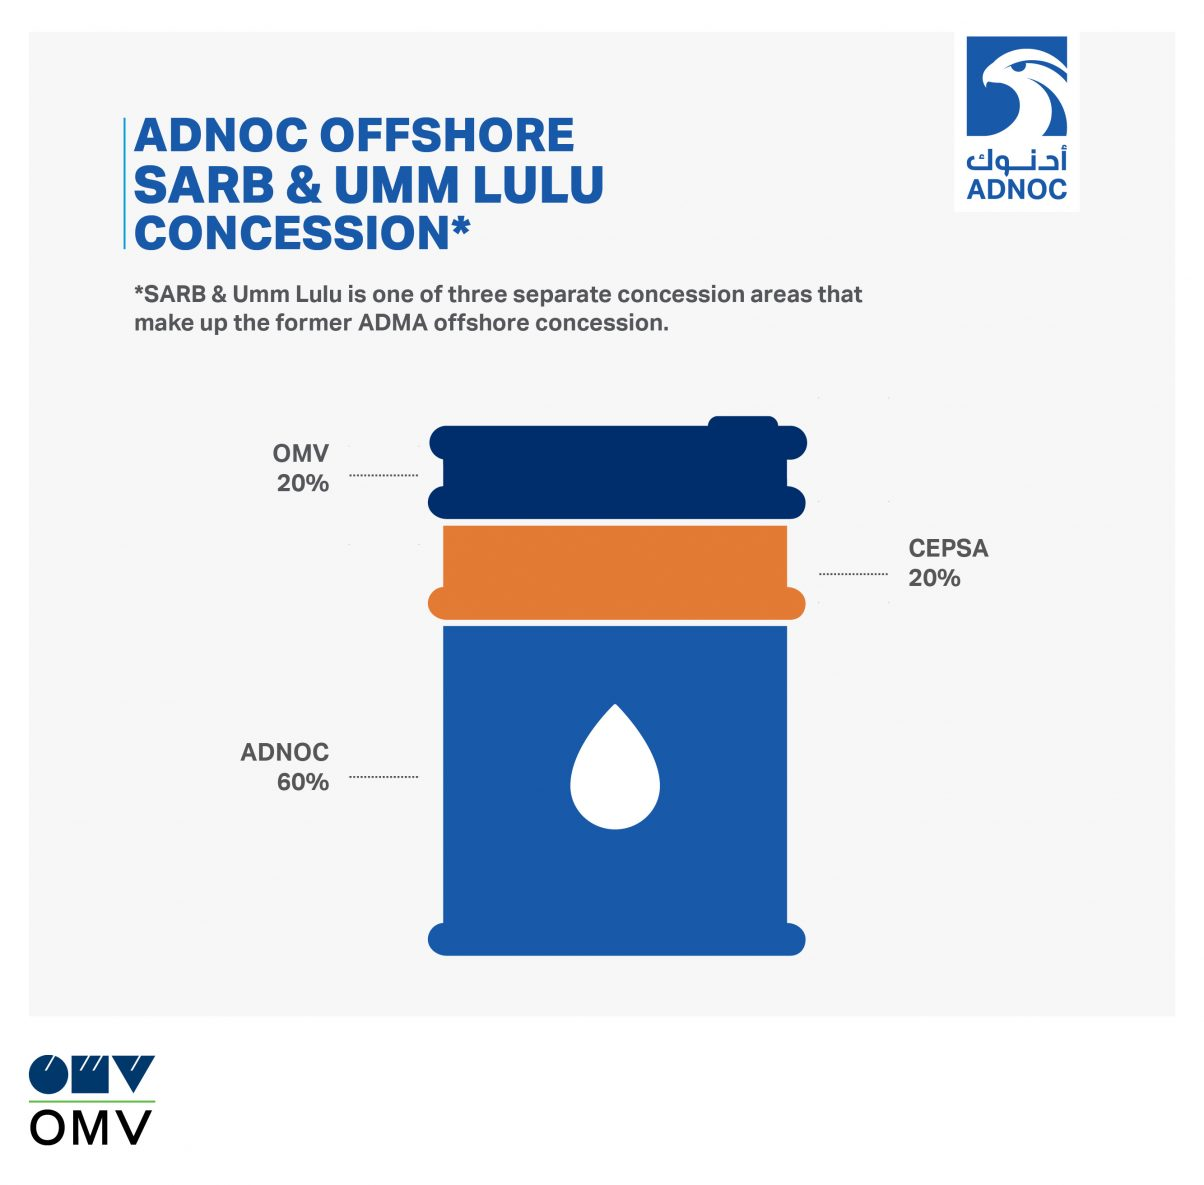 Austria's OMV Signs $1.5 Billion Offshore Oil Production Deal With ADNOC